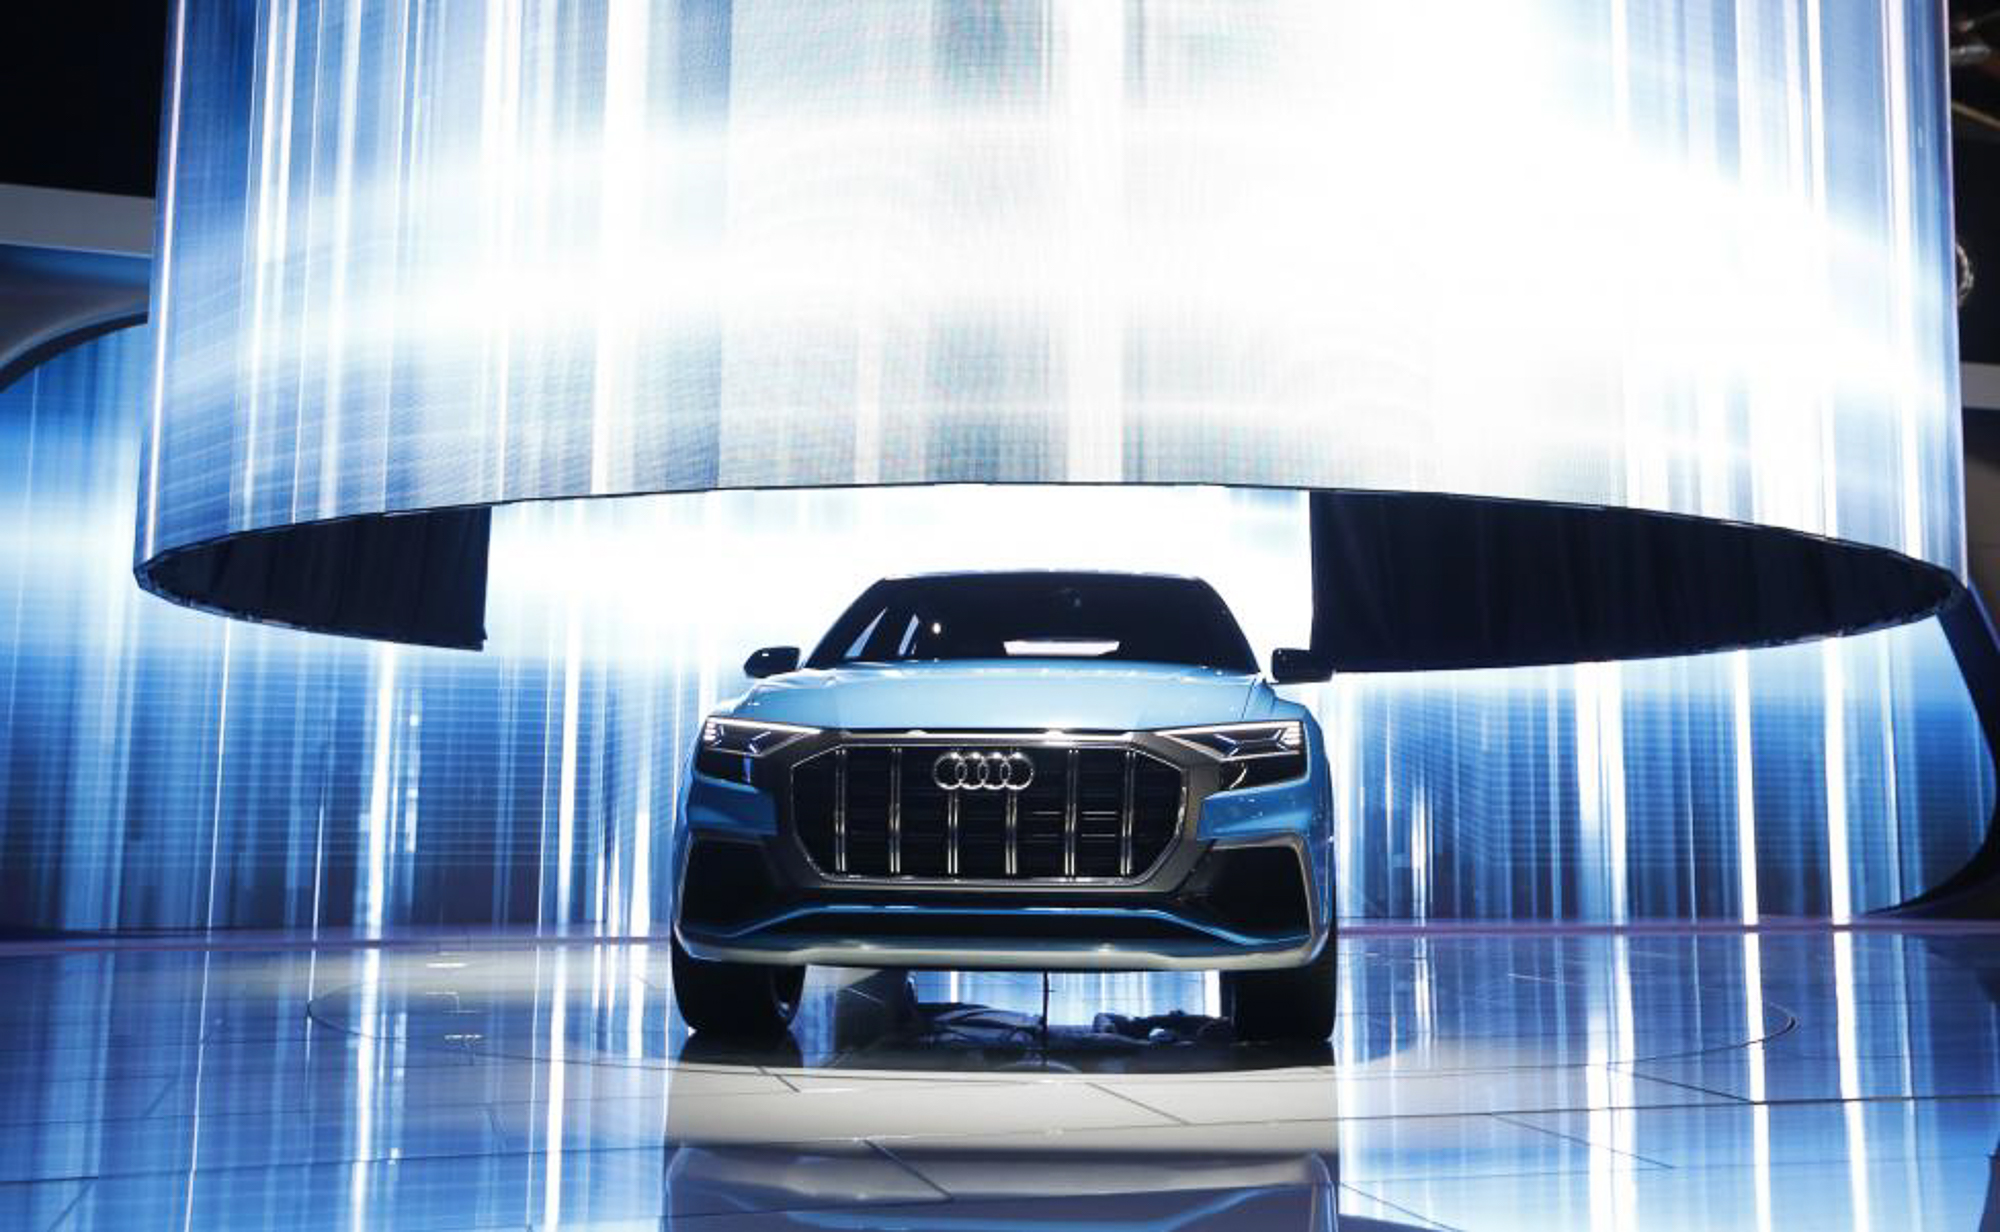 The Audi Q8 concept car. PHOTOI: REUTERS